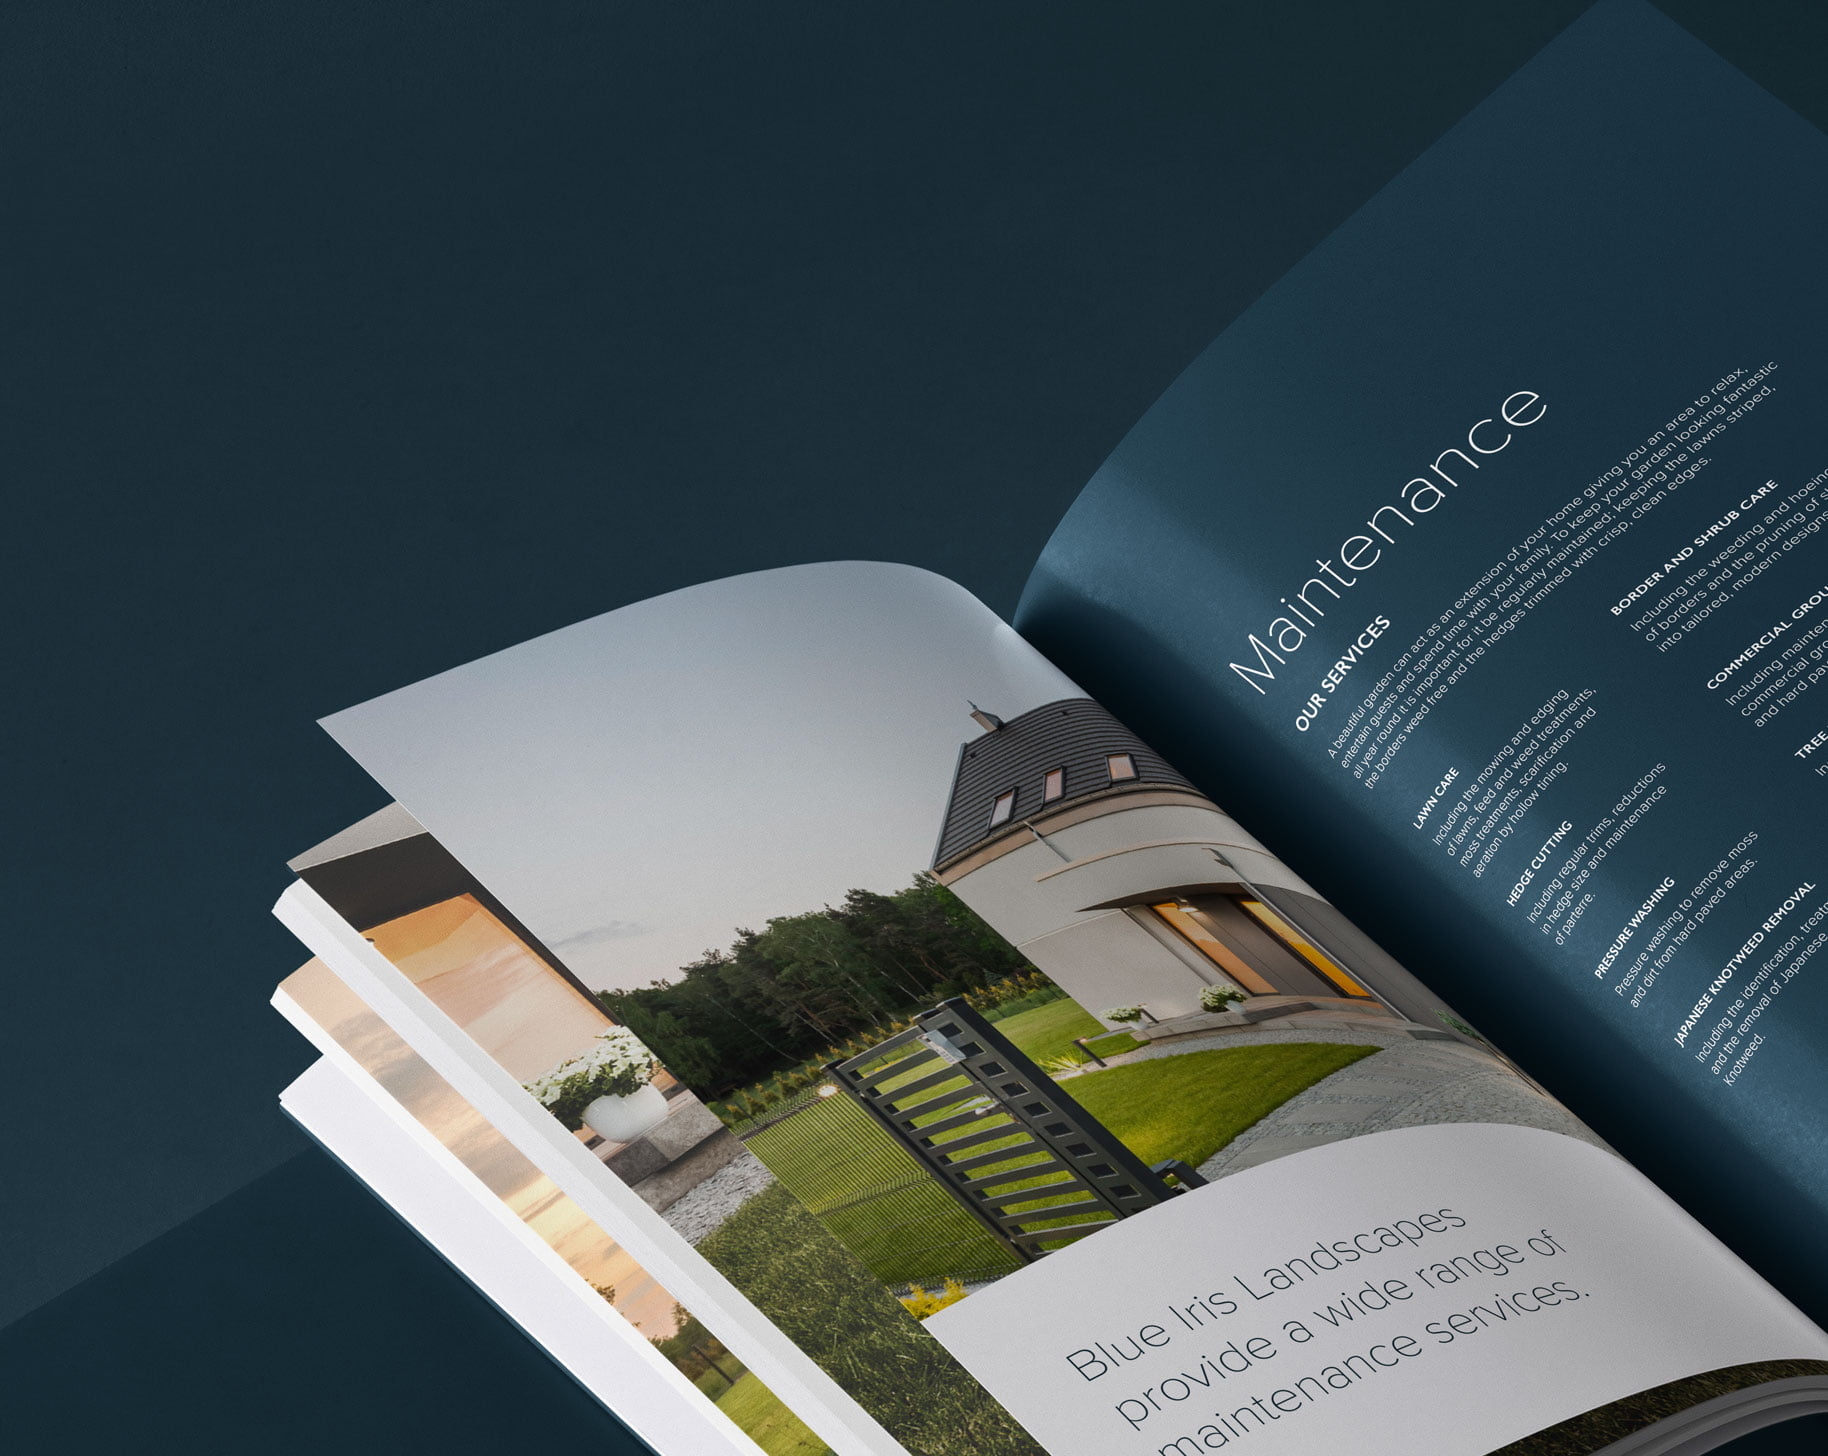 Graphic design and website design by Yellow Circle for Blue Iris Landscapes